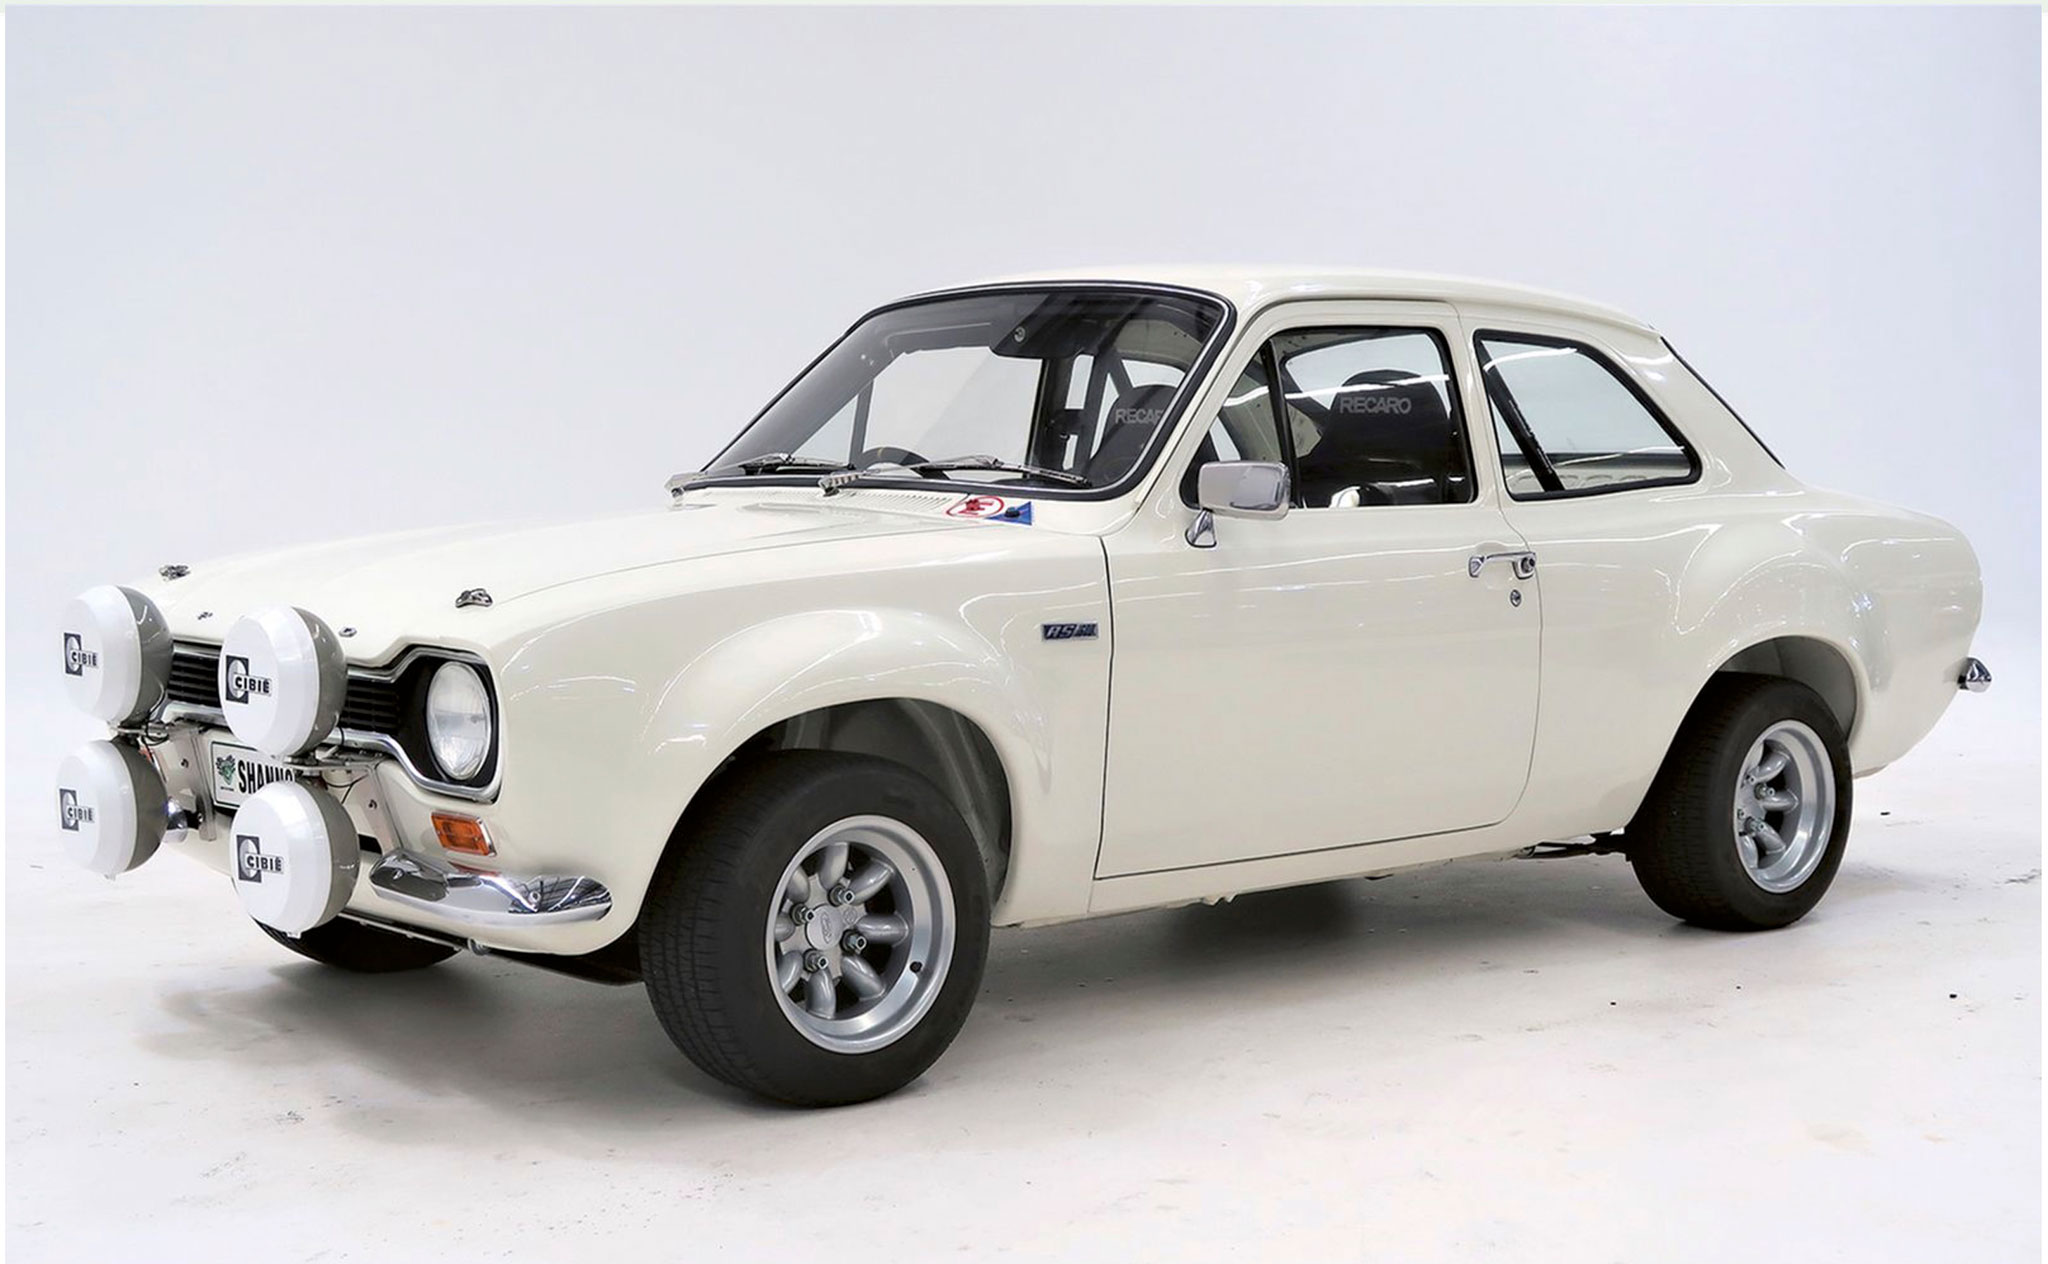 1973 Ford Escort RS1600 AUD$90,000-$120,000 - Sportives Ford aux enchères.